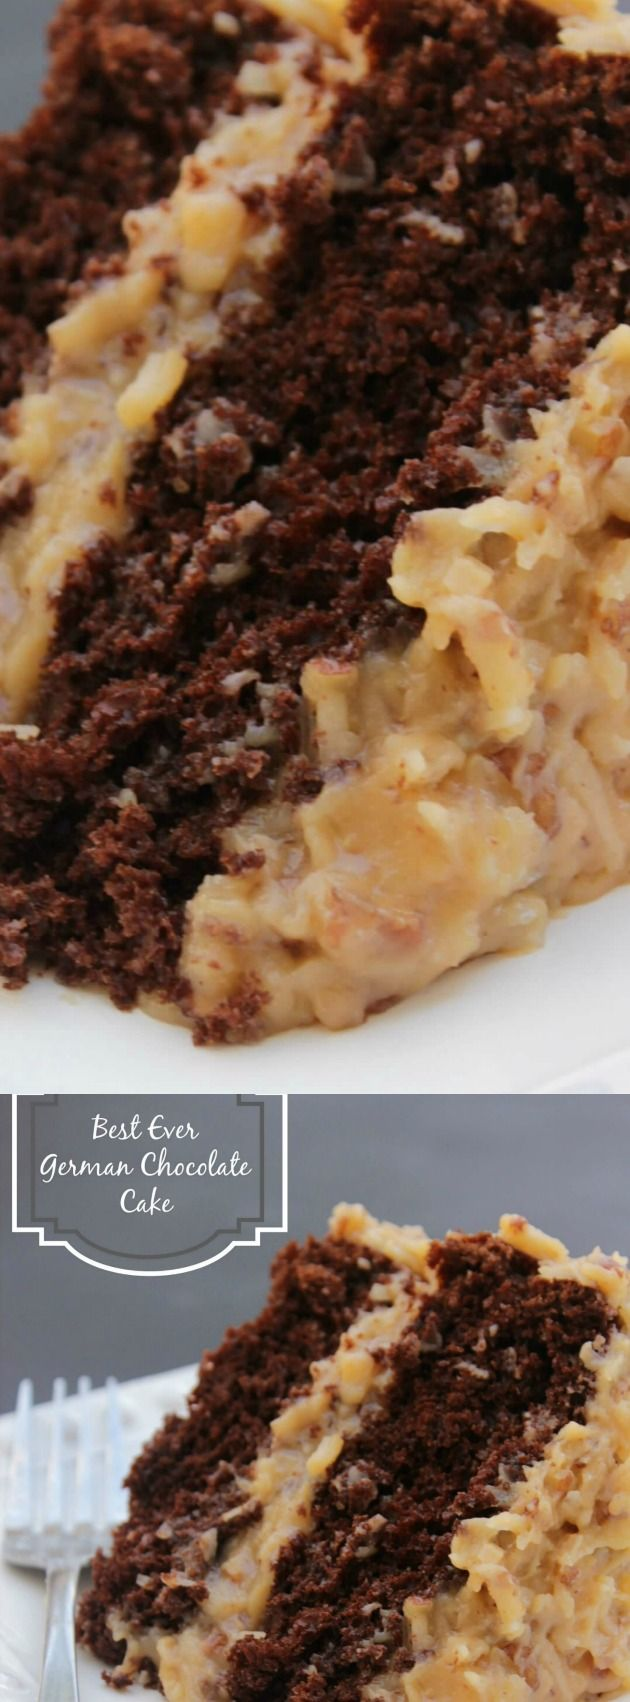 "This Best Ever German Chocolate Cake from Sandra over at A Dash of Sanity just might be the BEST German Chocolate Cake we've ever had!!! With it's double layer of cake goodness — and the classic German Chocolate Frosting you will seriously fall in love at first ""bite""!"